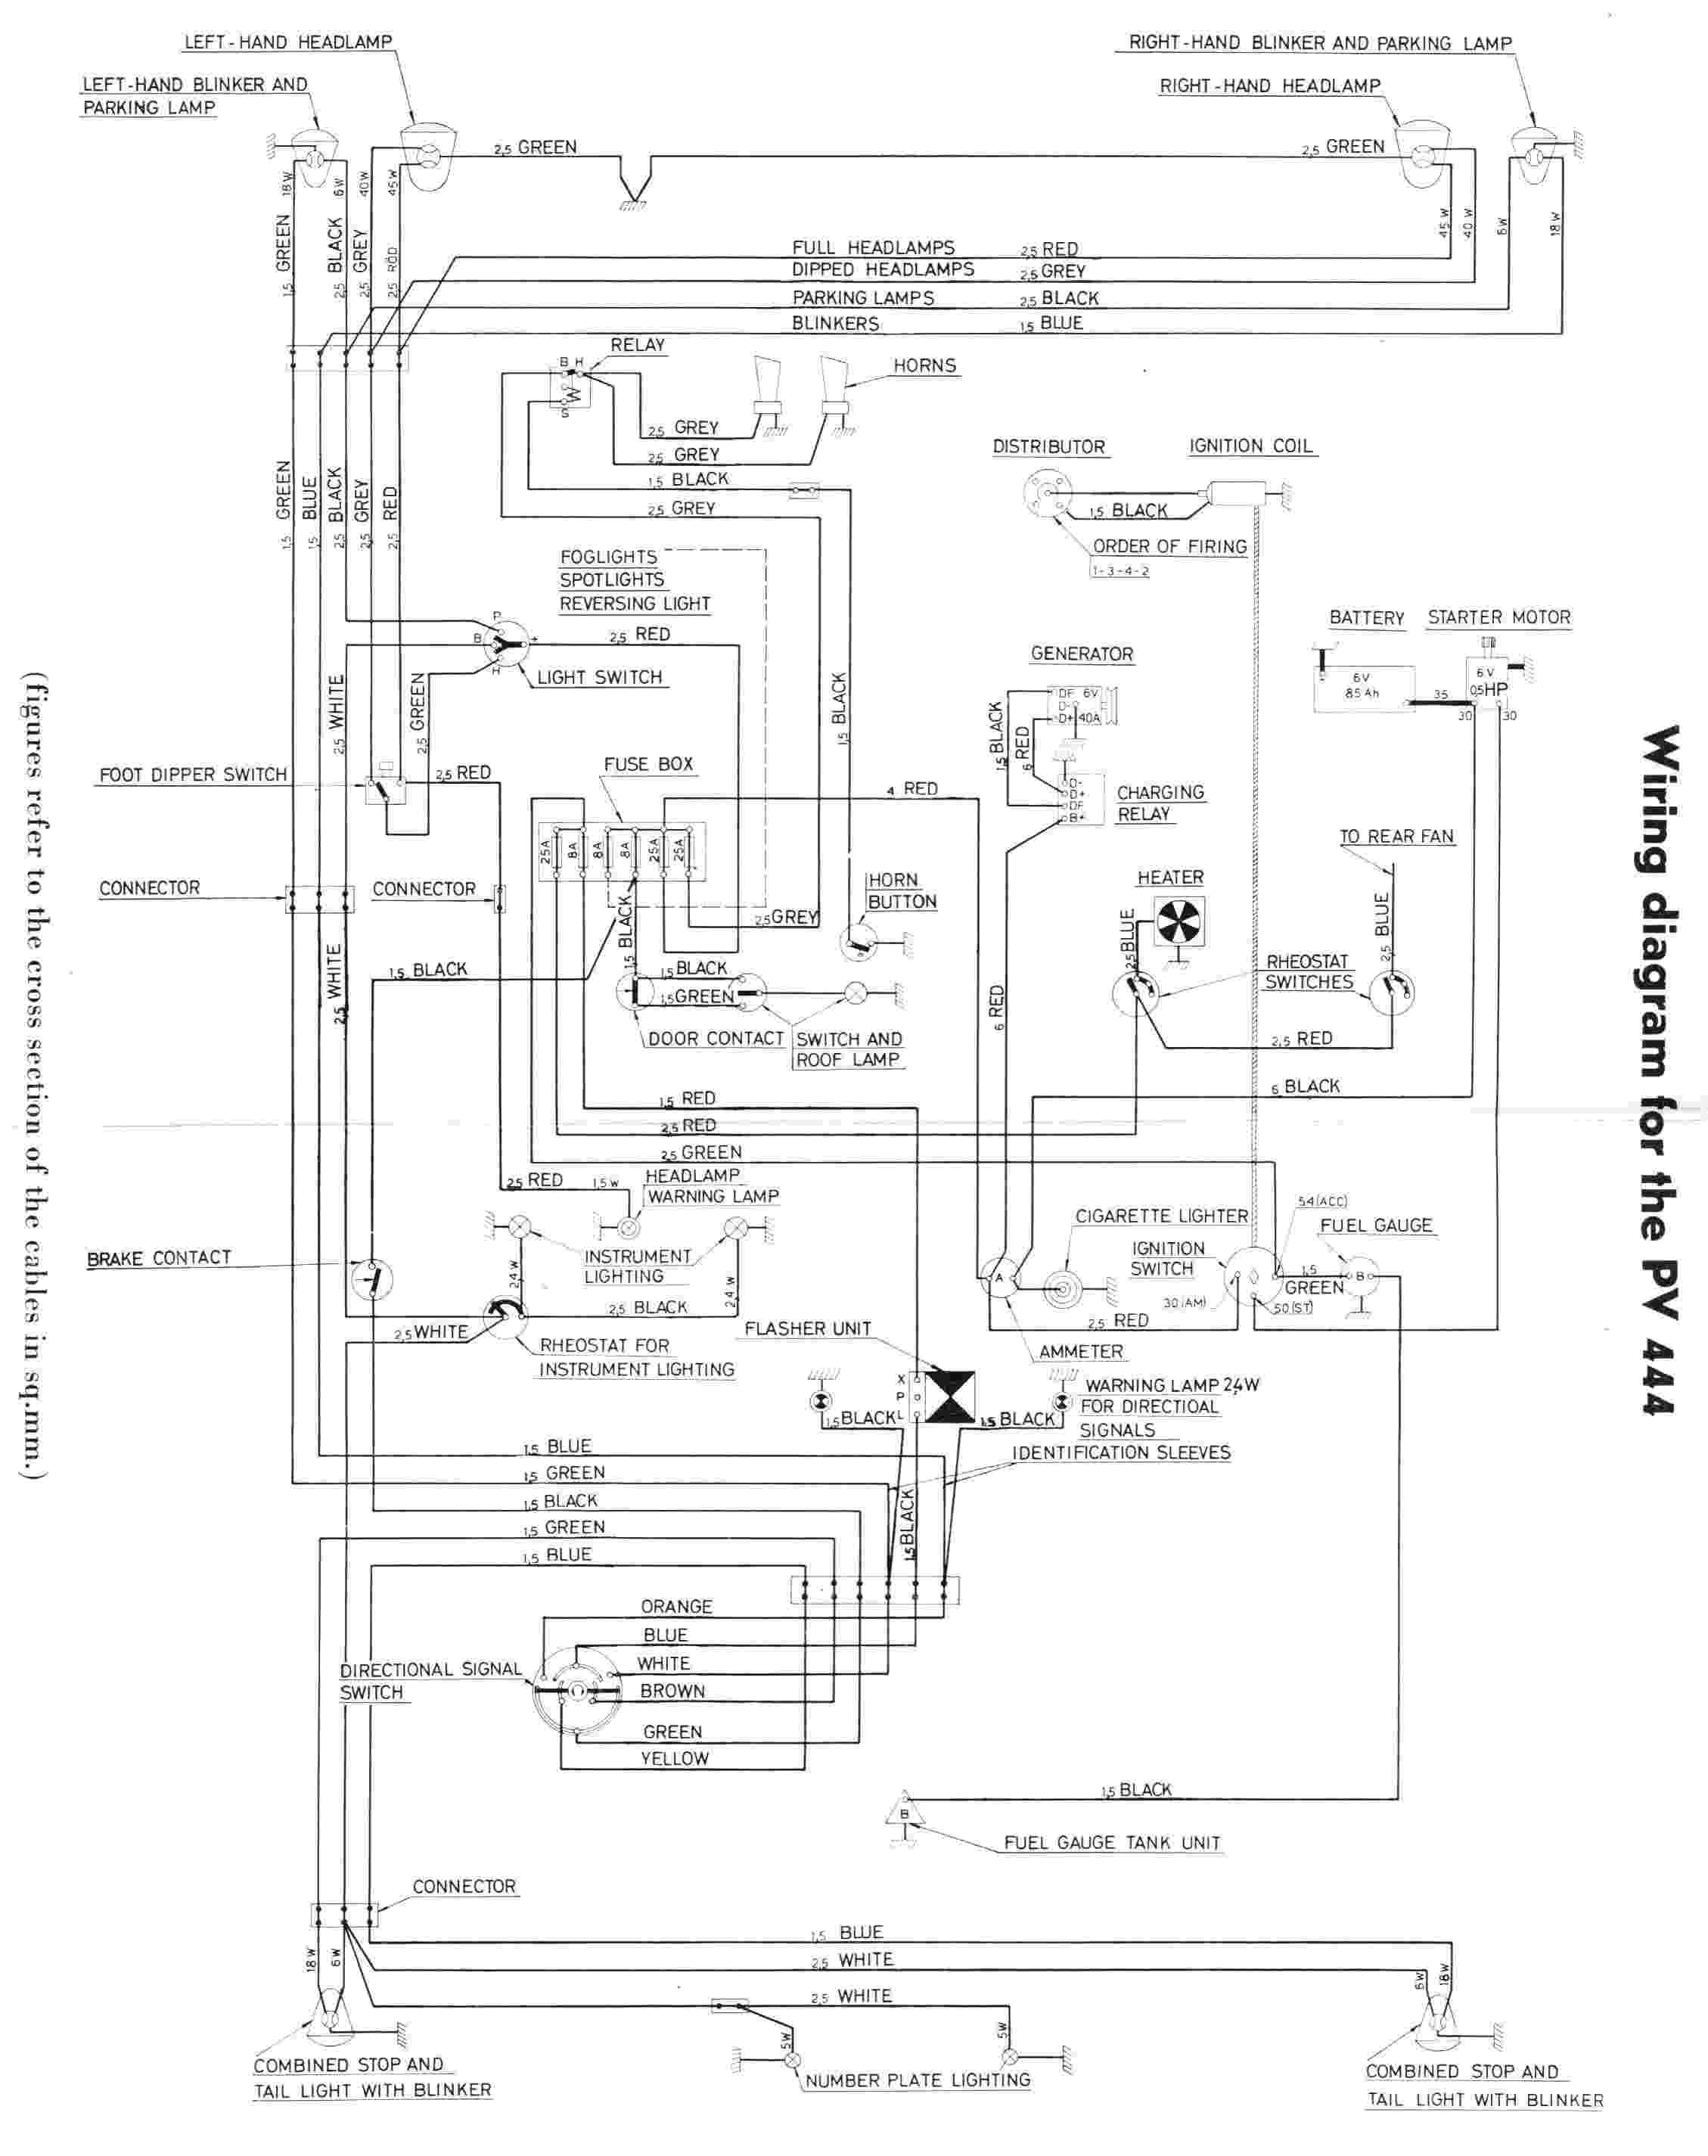 ... Volvo Truck Wiring Diagrams. Related Post